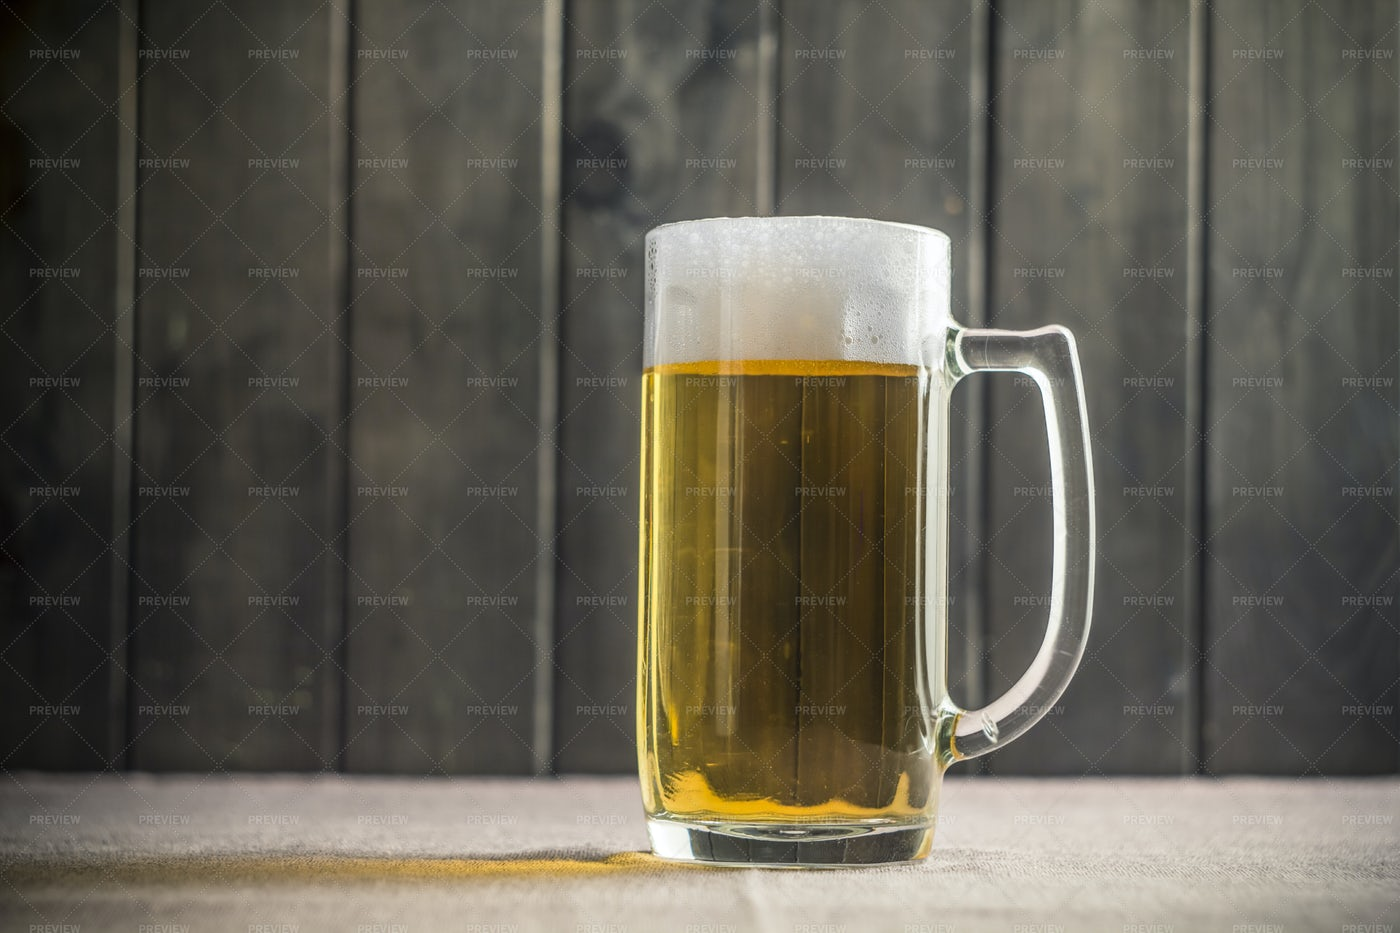 Beer With Foam In A Mug: Stock Photos